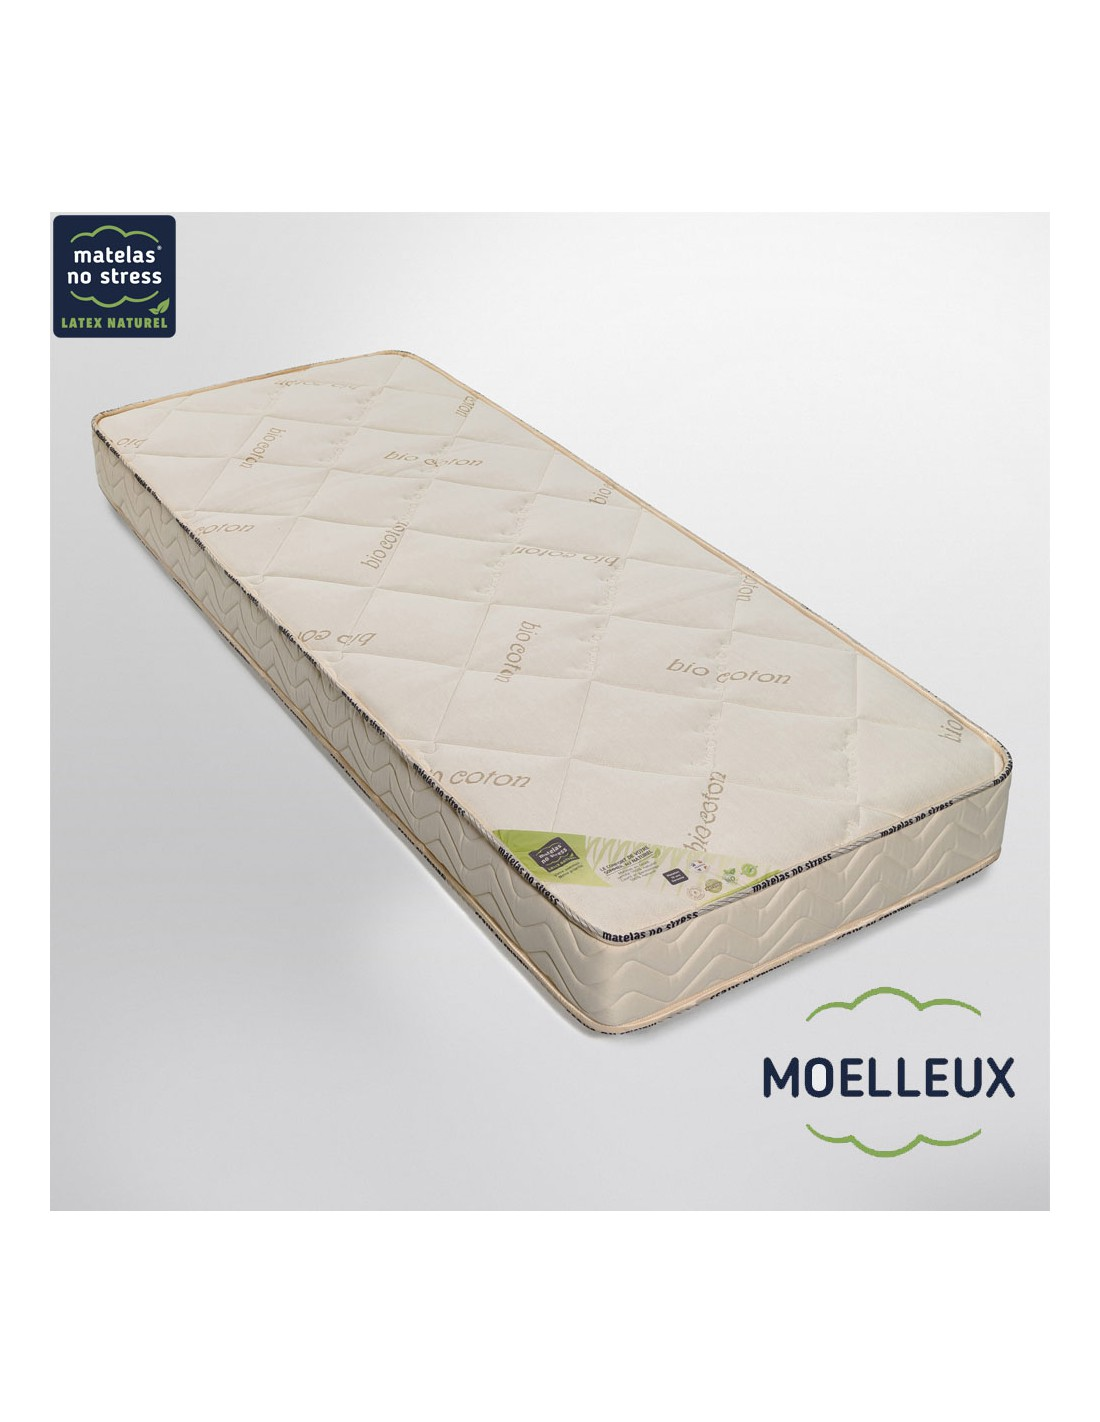 matelas bio moelleux en latex naturel. Black Bedroom Furniture Sets. Home Design Ideas